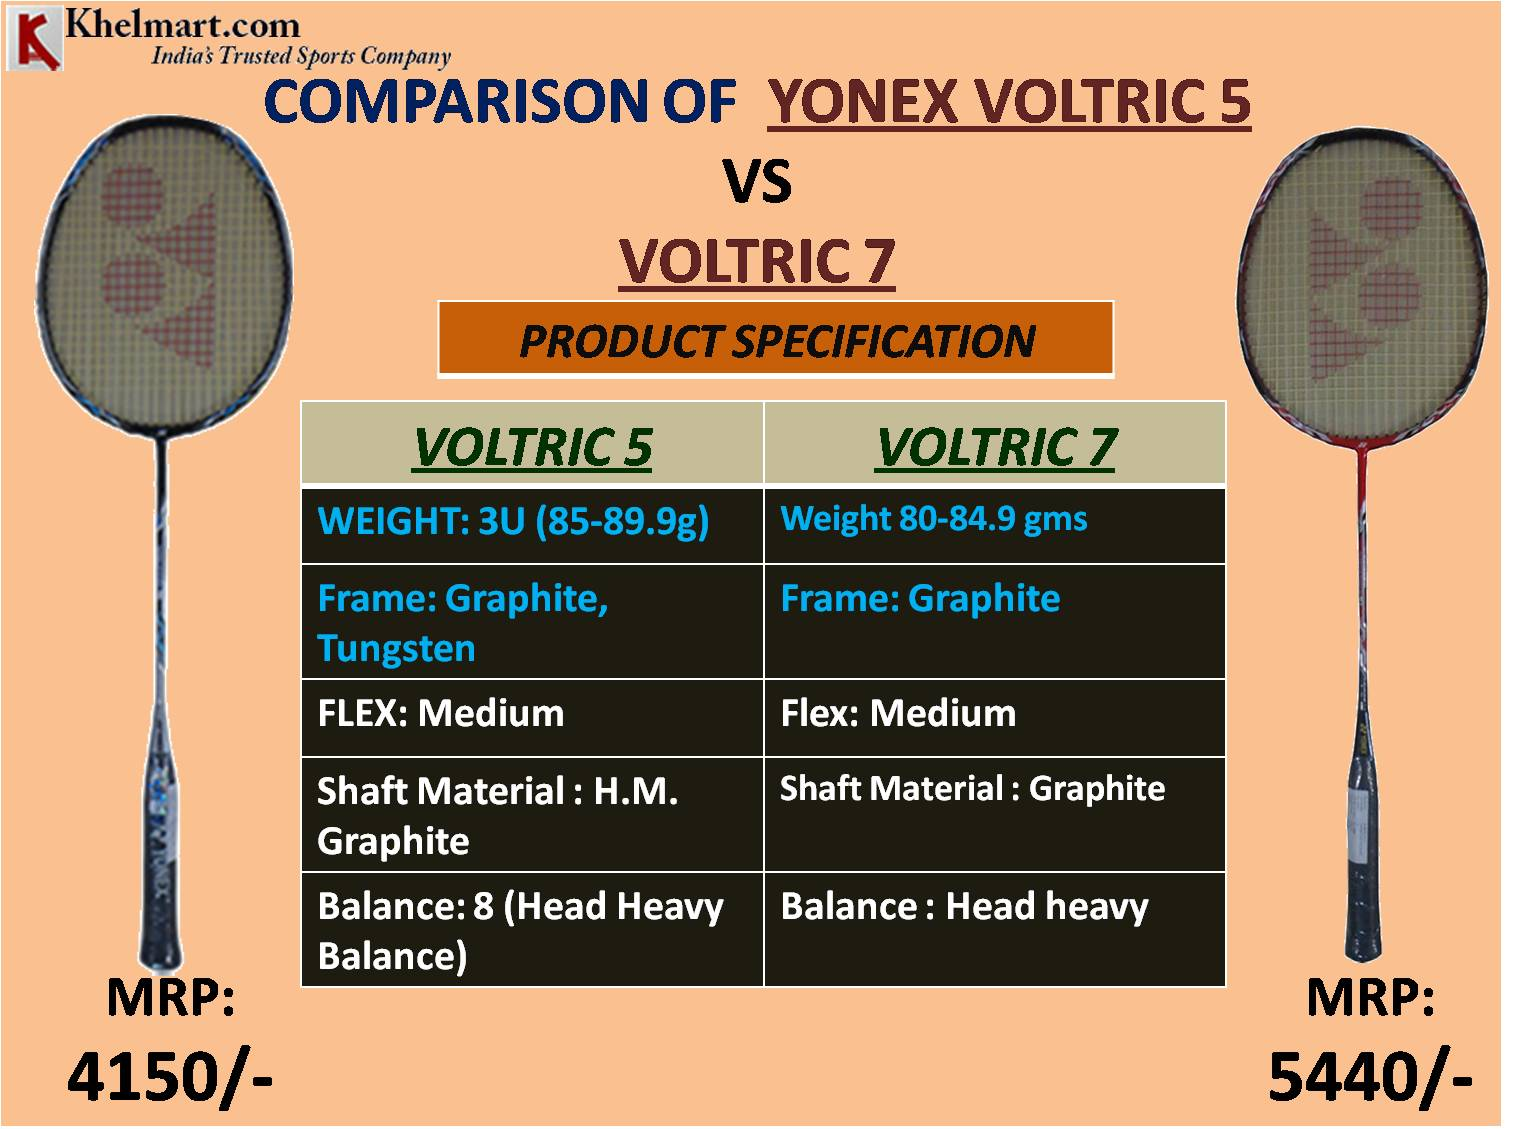 COMPARISON OF YONEX VOLTRIC 5 vs VOLTRIC 7